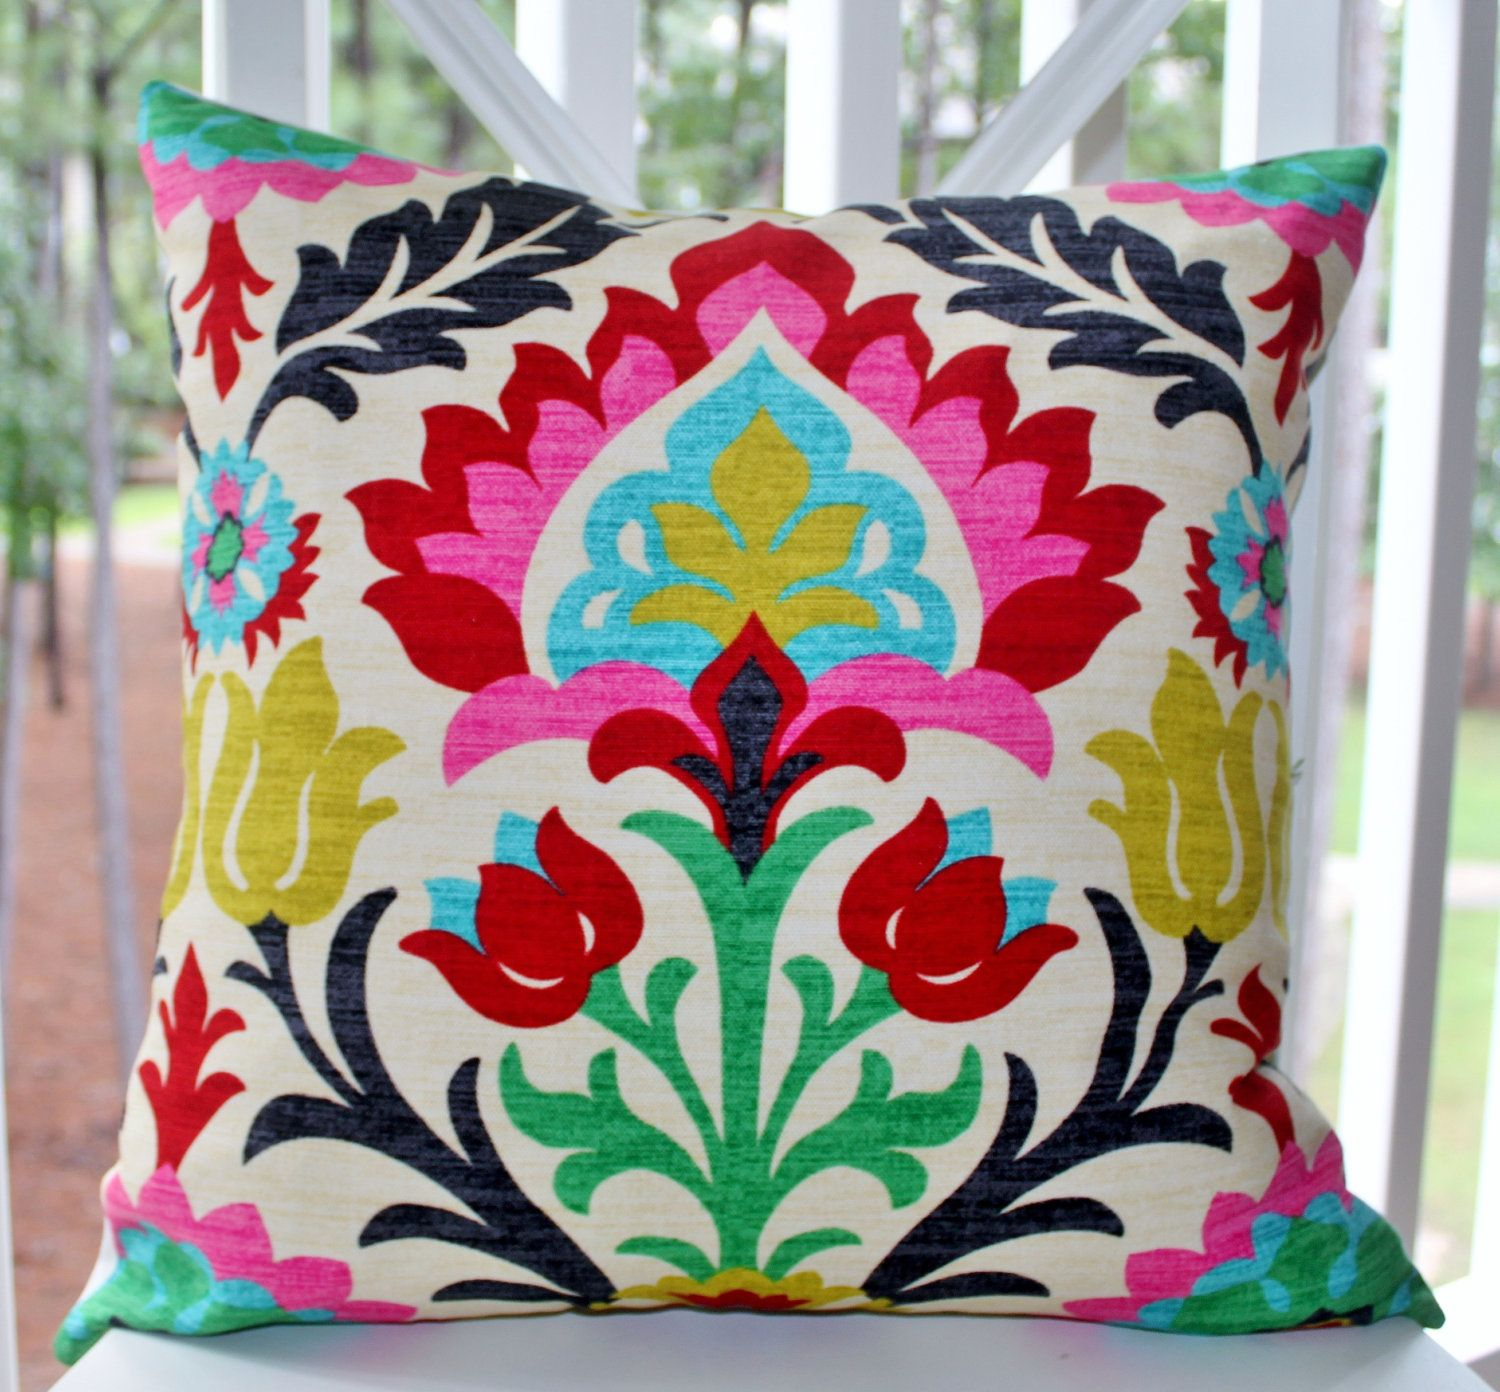 Throw Pillows Bright Colors : Decorative Pillow Cover - Desert Flower - Modern Red Pink Turquoise Pillow - Bright Color Throw ...